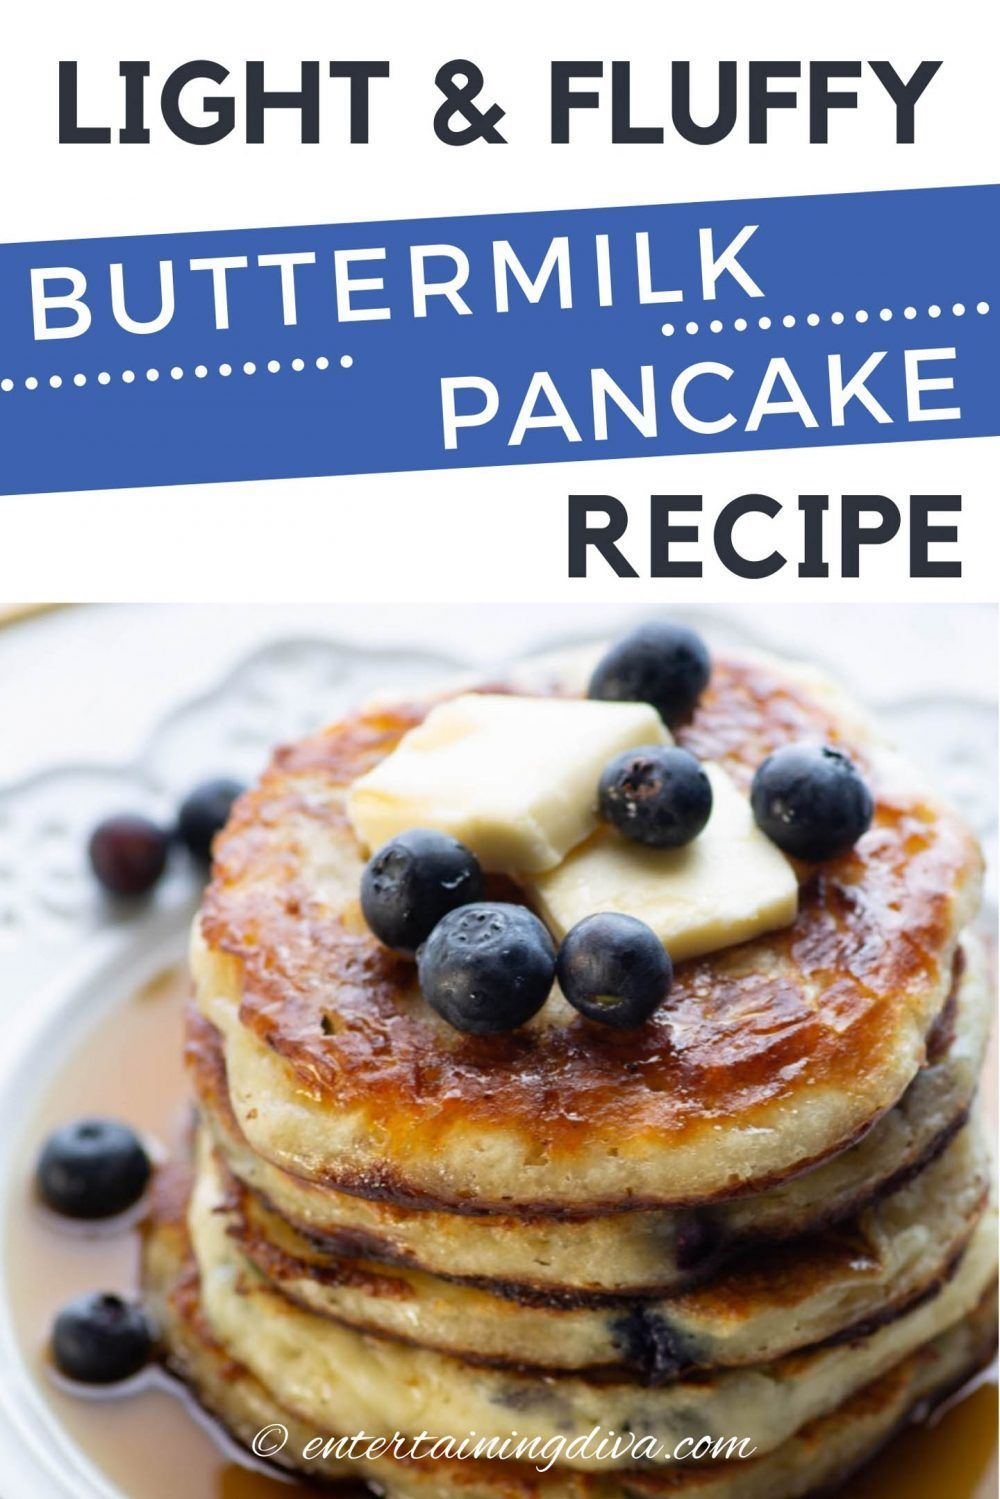 This Buttermilk Pancakes Recipe Is To Die For They Are So Light And Fluf In 2020 Pancake Recipe Buttermilk Buttermilk Pancakes Fluffy Fluffy Buttermilk Pancake Recipe